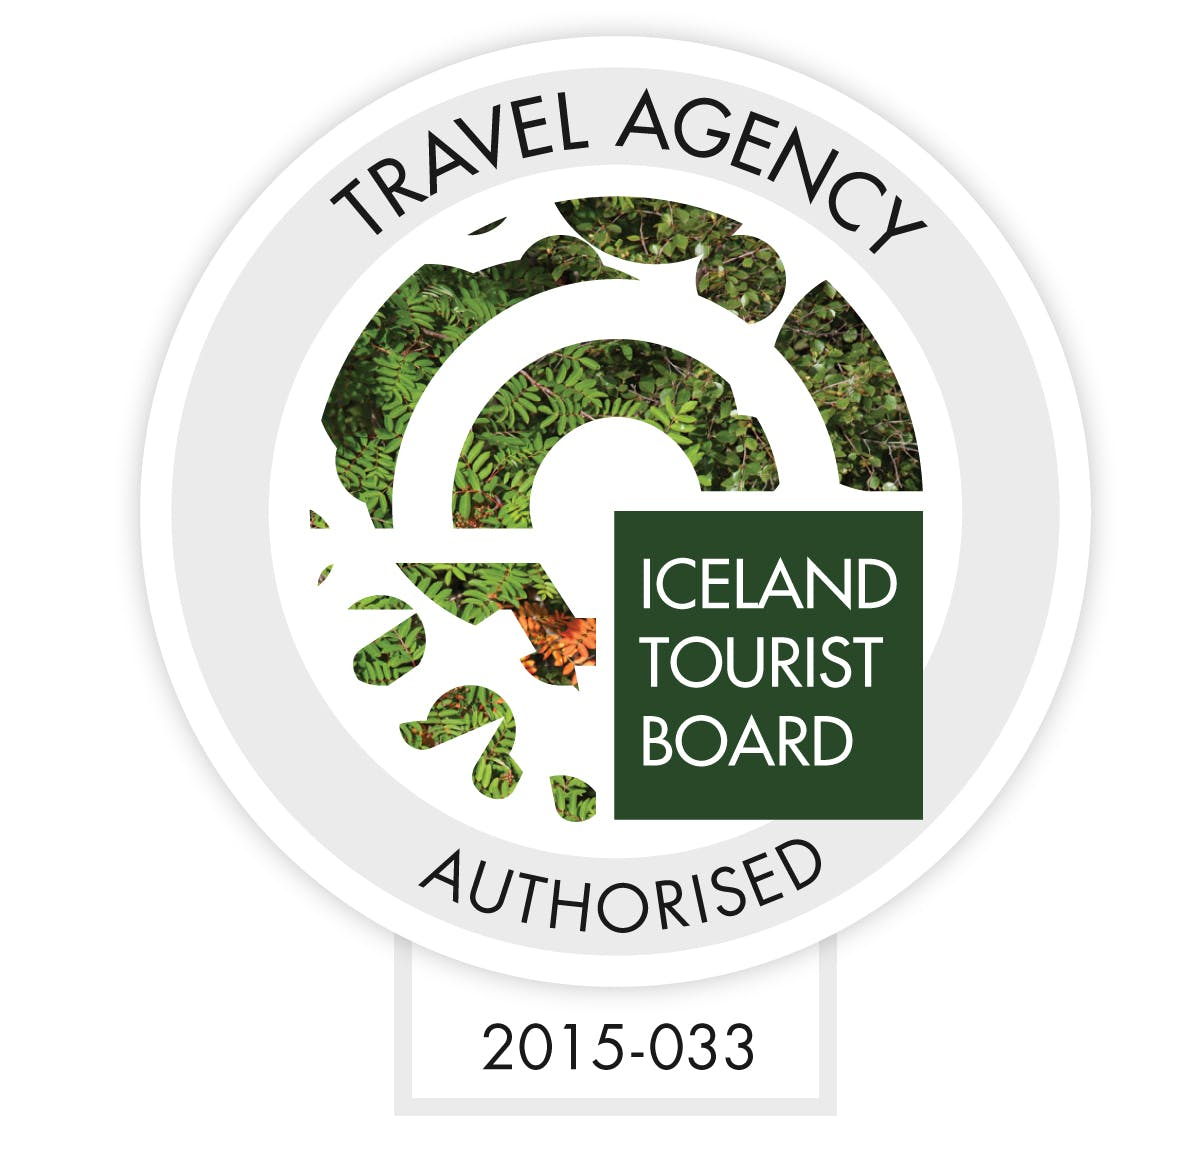 12 Day Summer Package | Guided tour of the Complete Circle of Iceland & Snaefellsnes Peninsula